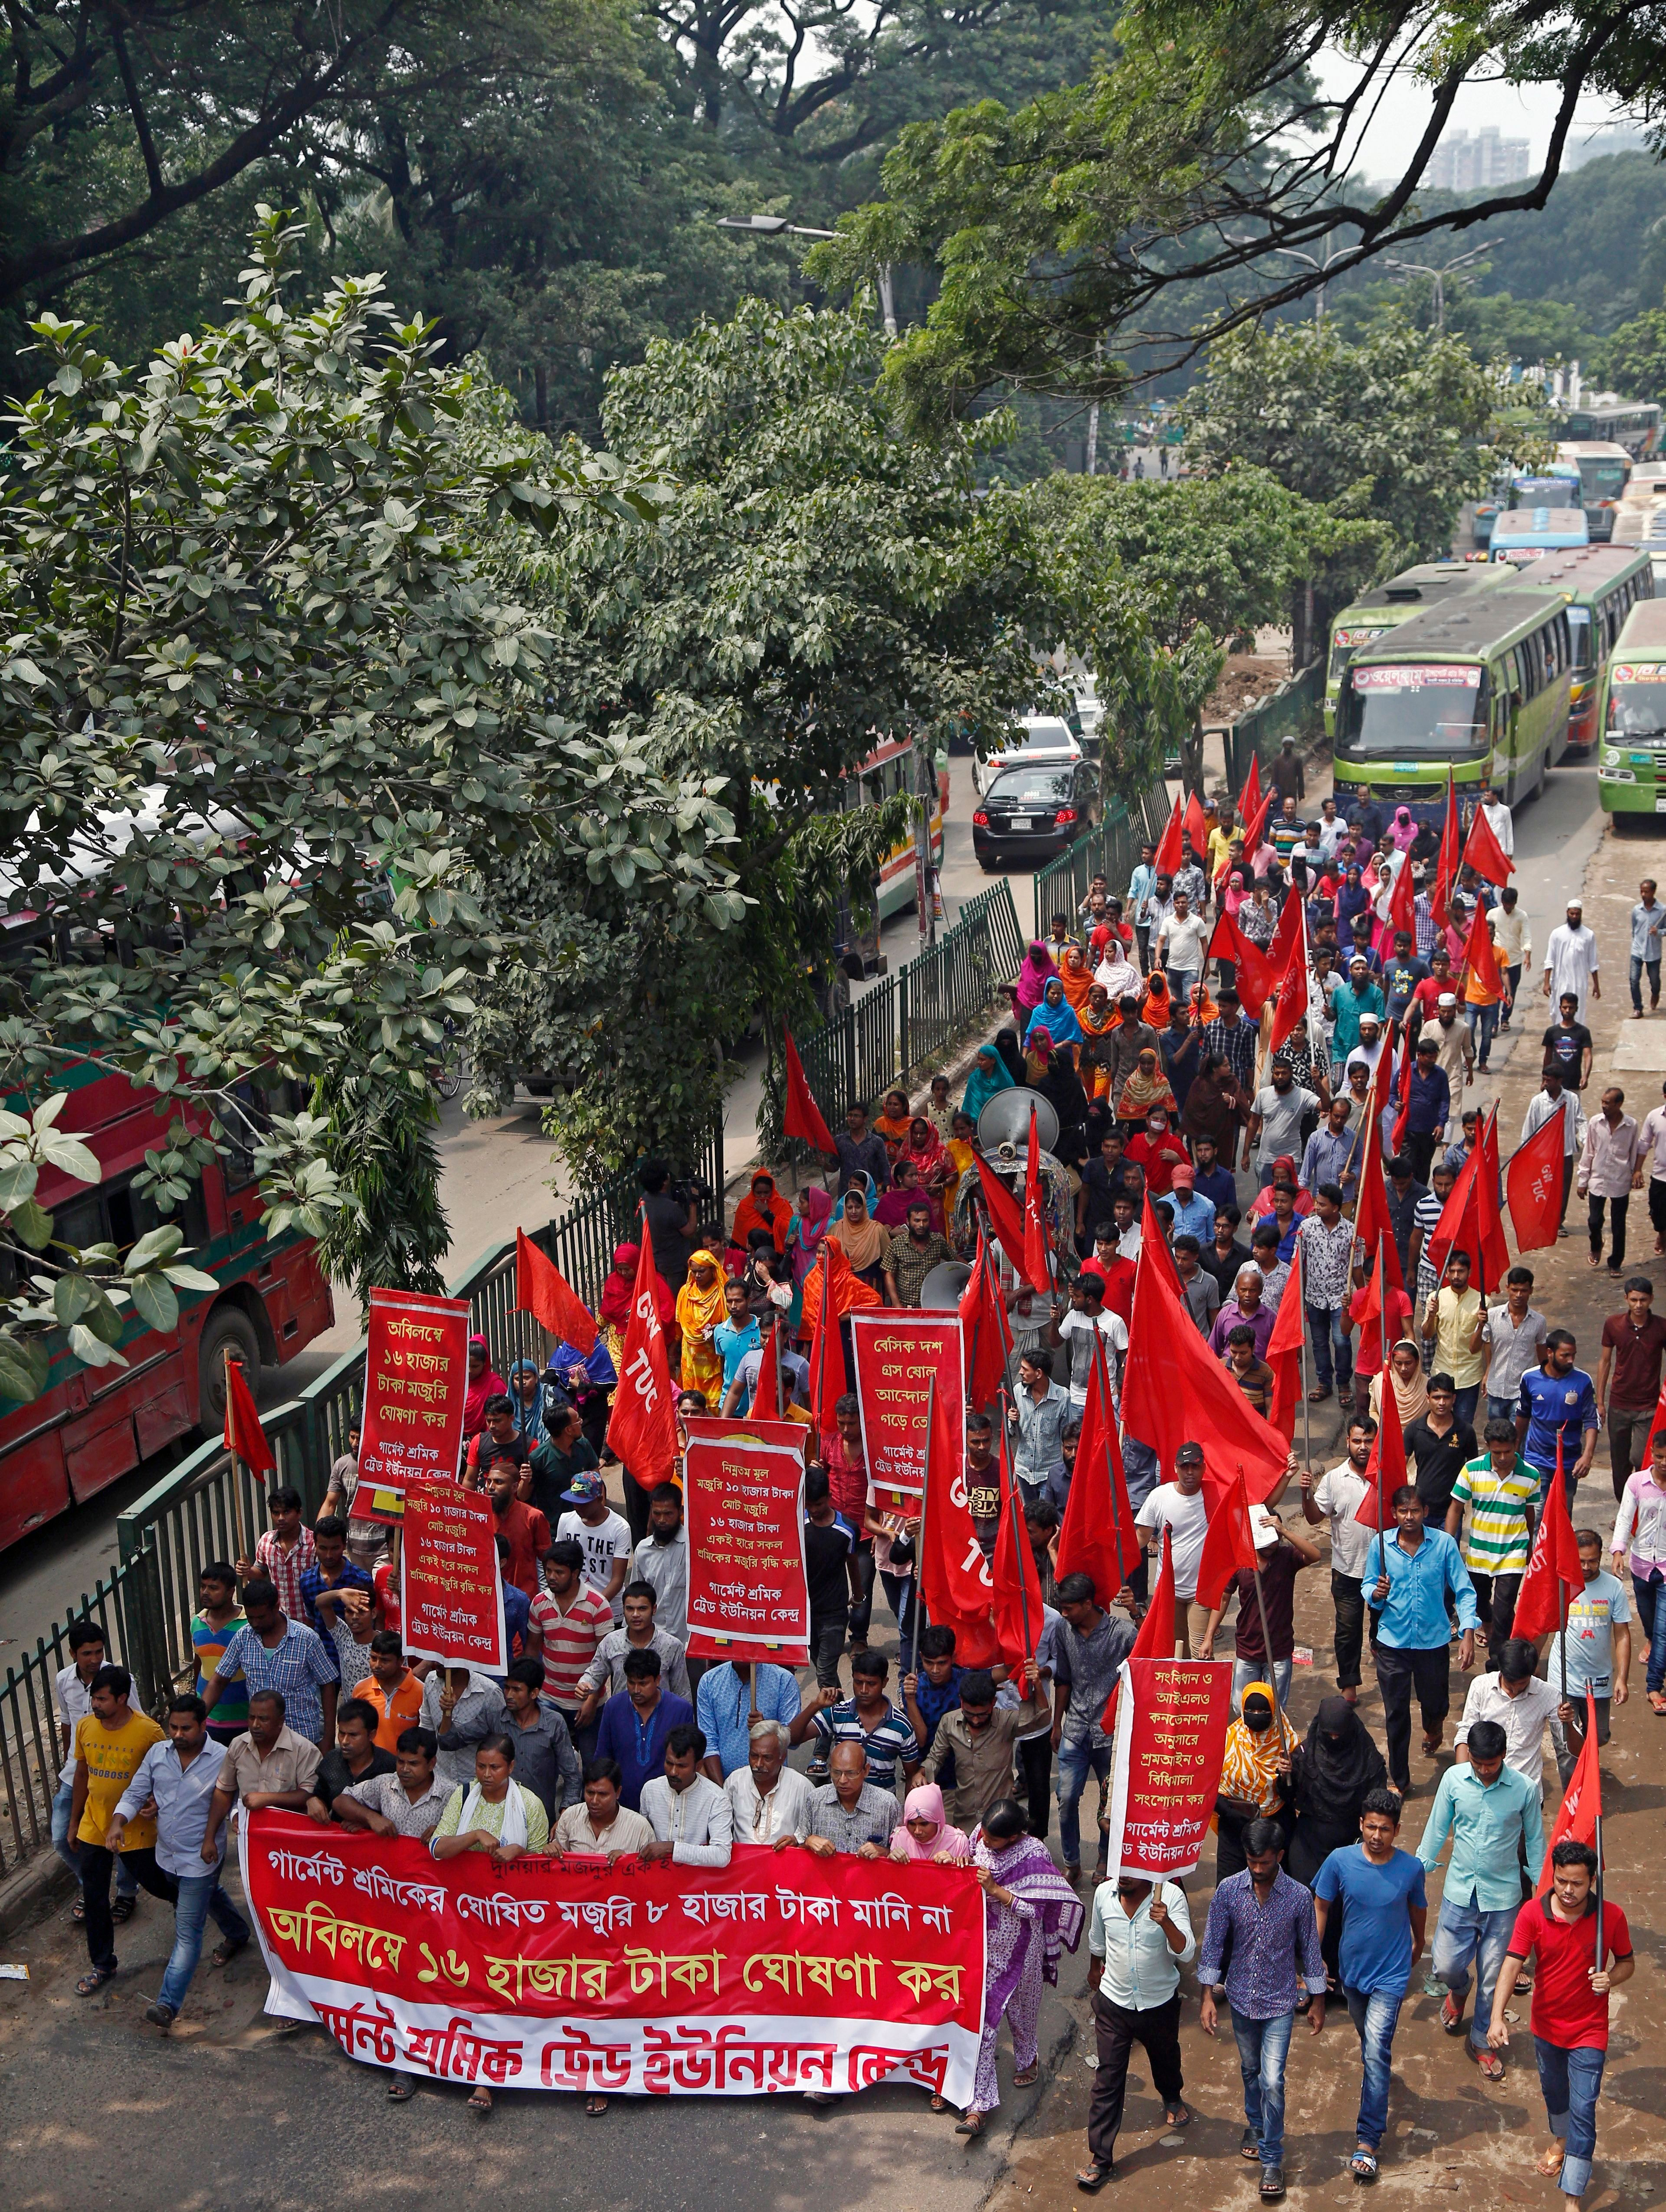 Bangladeshi garment workers shout slogans during a protest rally blocking a road in Dhaka, Bangladesh, 14 September 2018. According to media reports, workers from ready-made garment factories rejected the government's decision to raise their minimum monthly wage to 8,000 as they demanded instead a minimum monthly wage up to 16,000, for an estimate of 4.4 million garment workers.Garment workers stage demonstration over minimum wage in Bangladesh, Dhaka - 14 Sep 2018